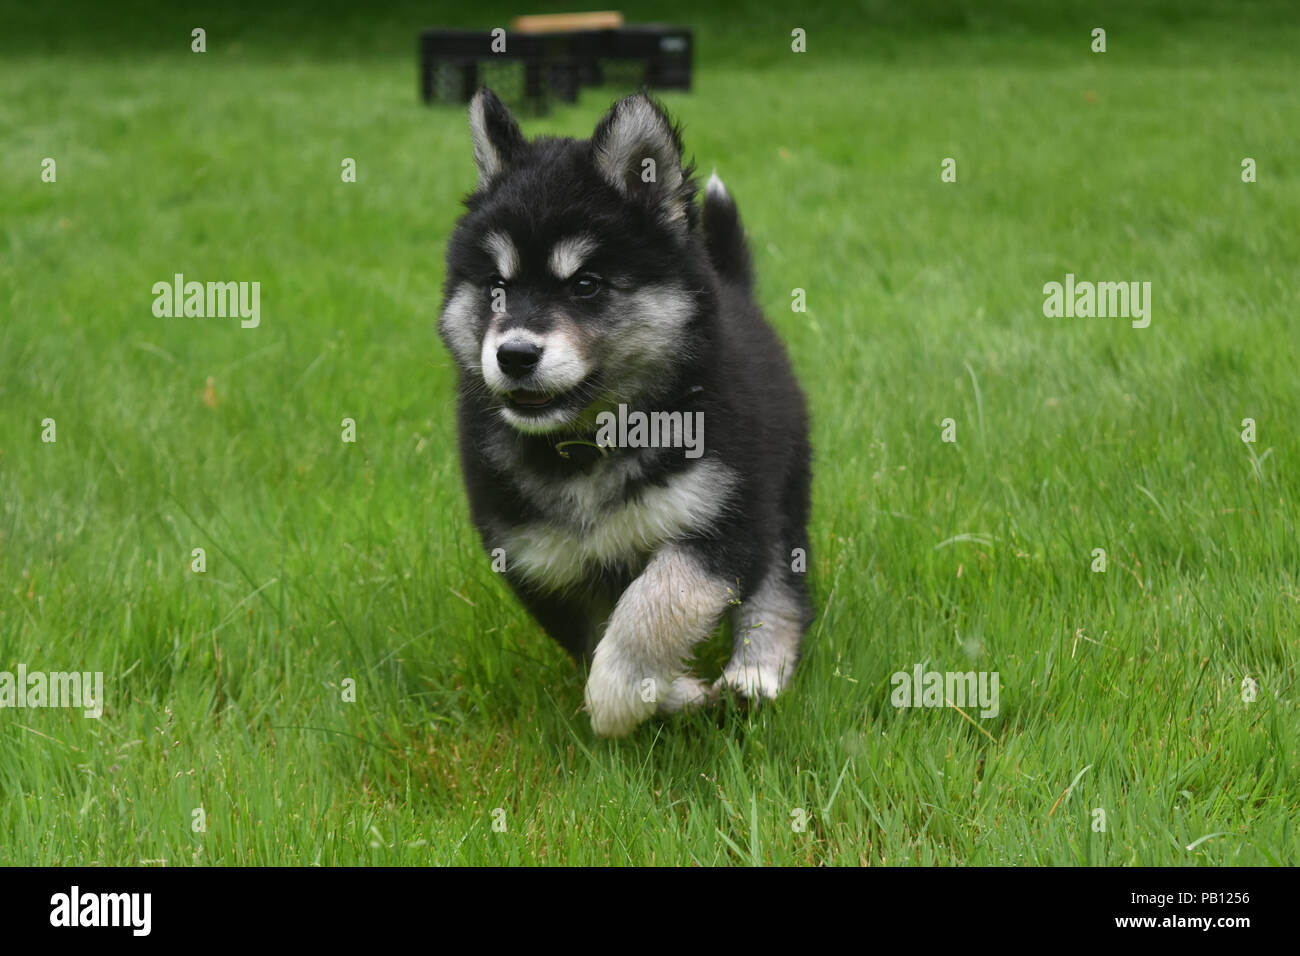 Adorable Alusky Puppy Dog Running At Full Speed Stock Photo